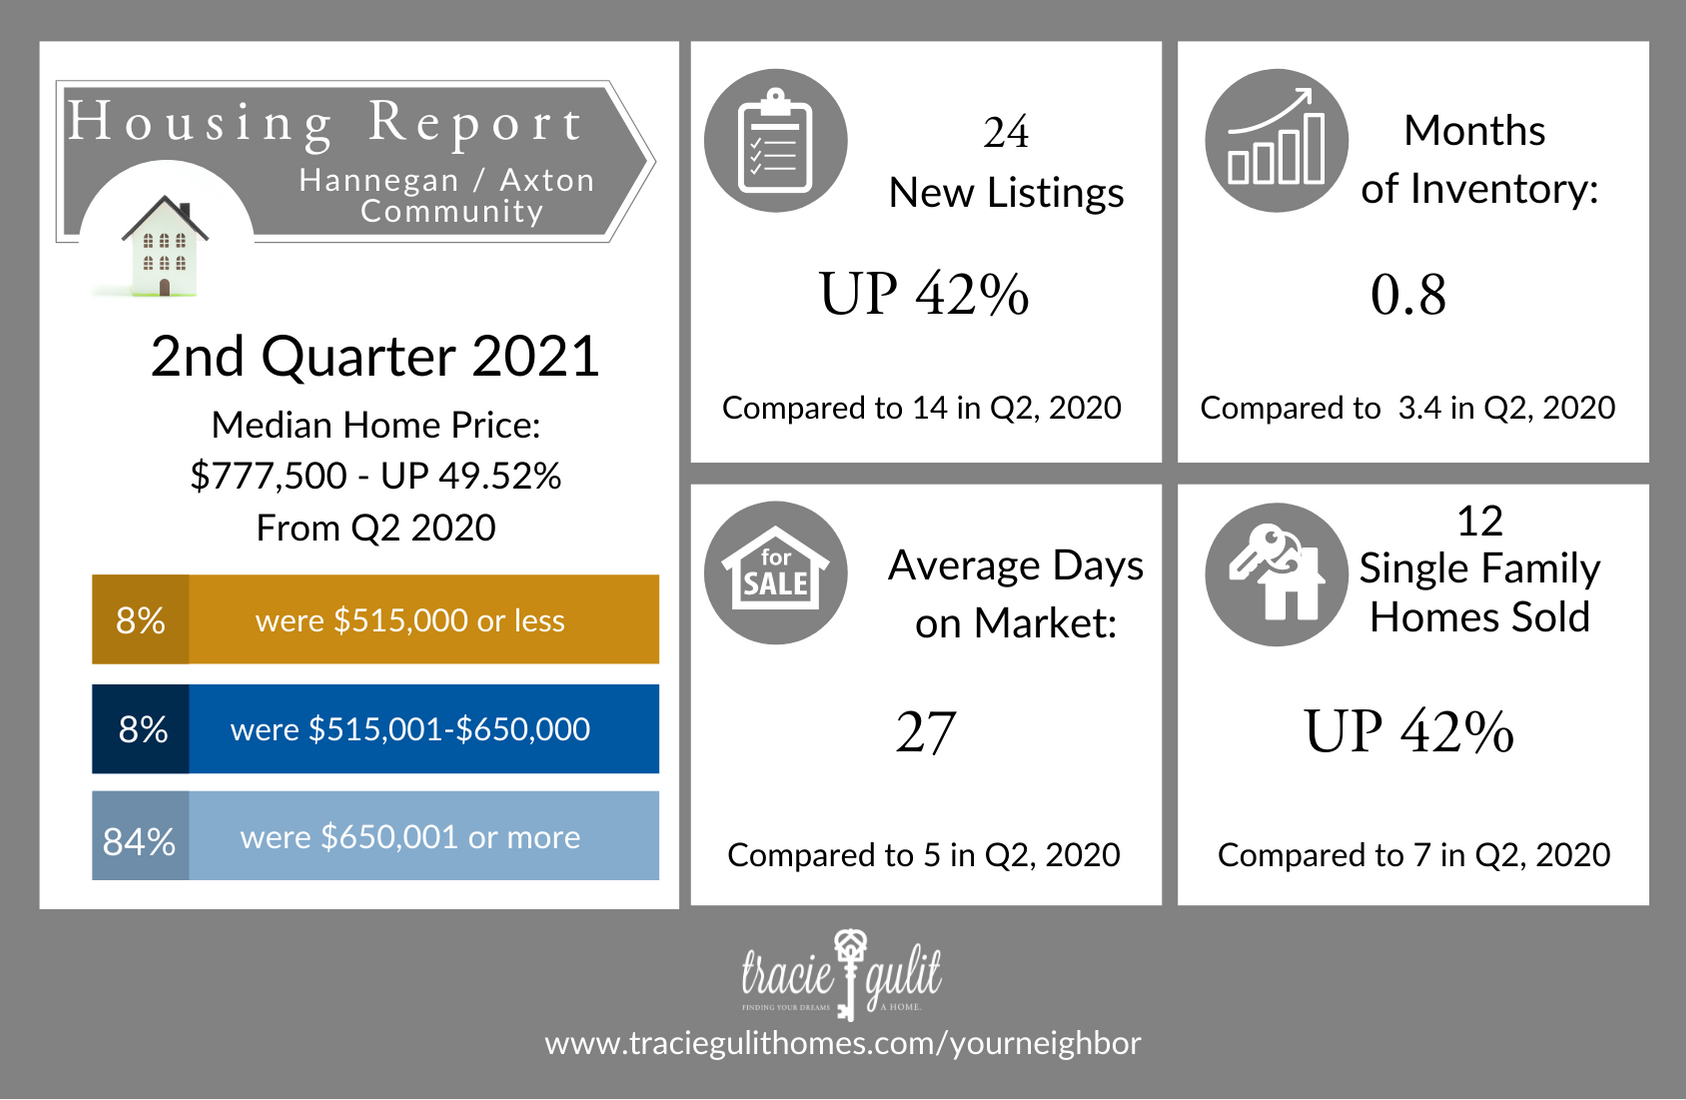 Tracie Housing Report Infographic